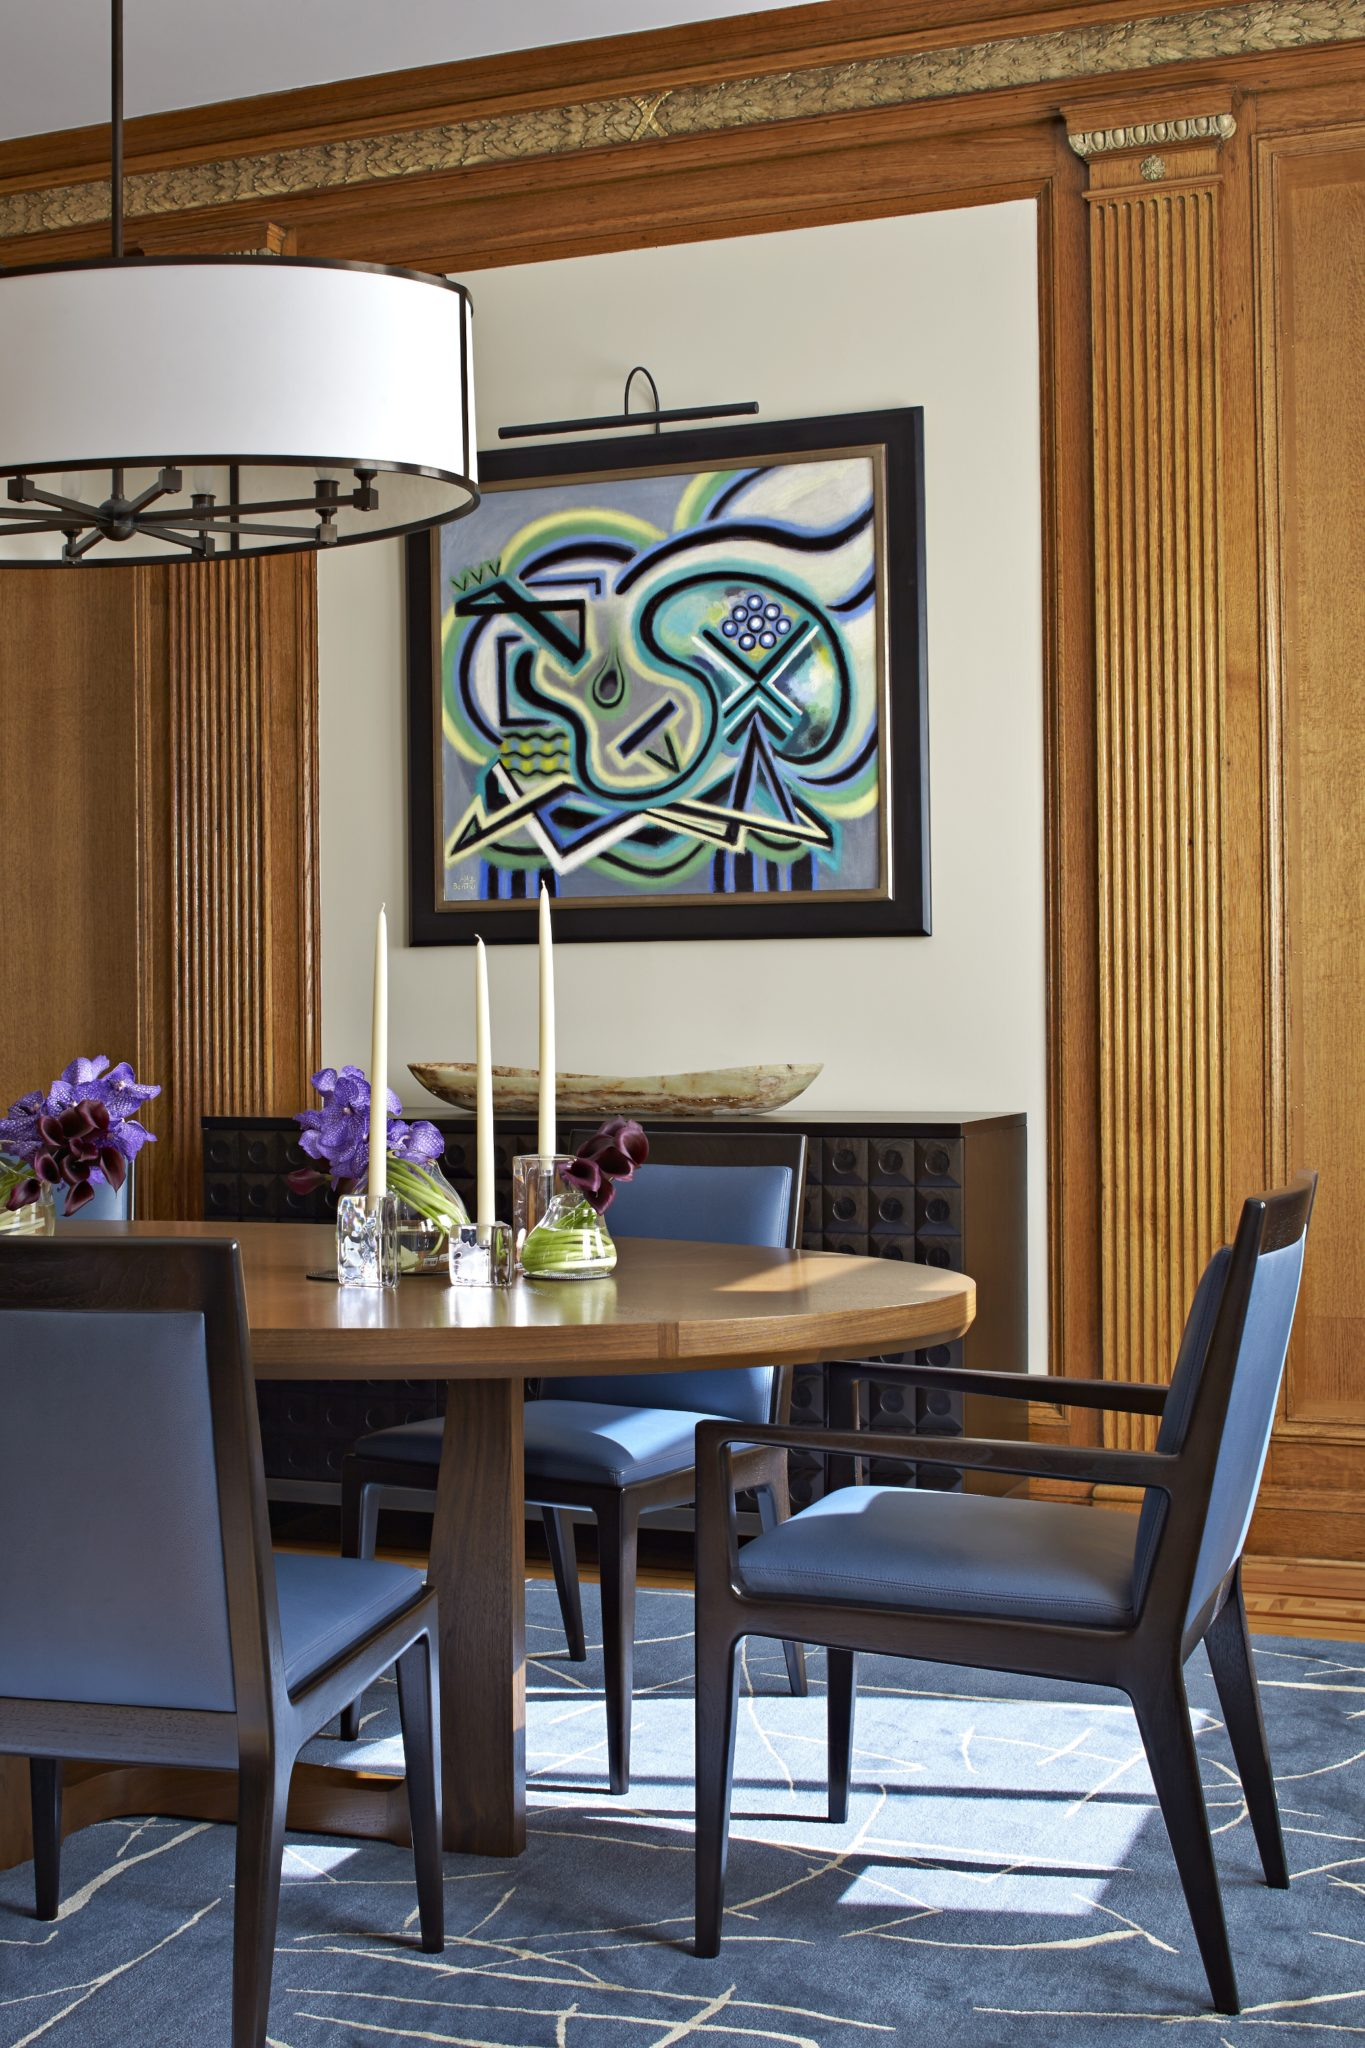 Classic Paneled Dining Room with Contemporary Furnishings by Haver & Skolnick Architects